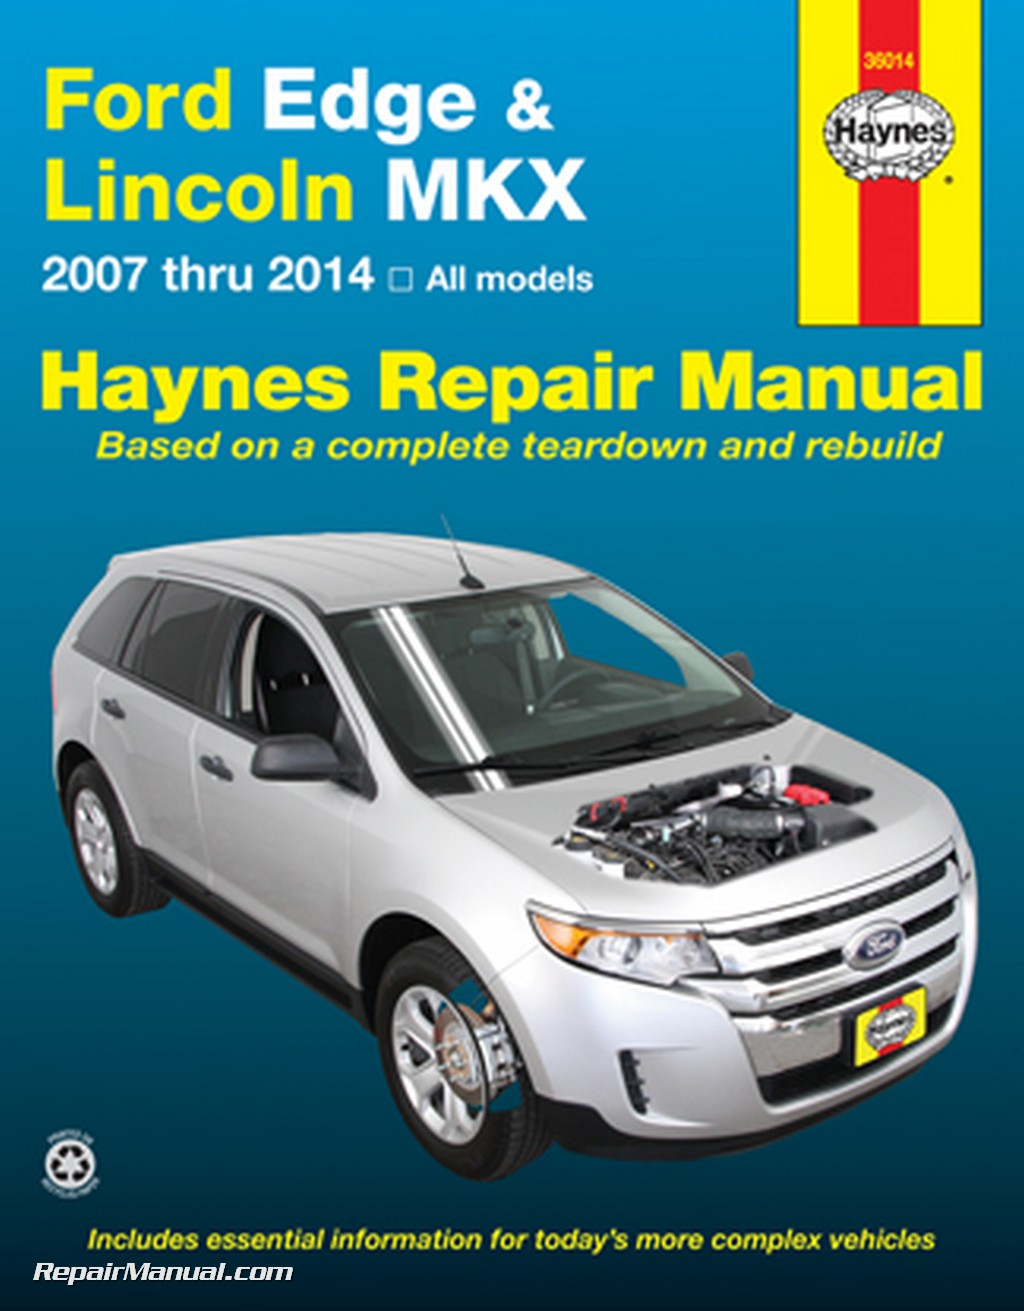 ford edge lincoln mkx haynes repair manual 2007 2014 rh repairmanual com 2001 lincoln town car repair manual video 2000 lincoln town car repair manuals